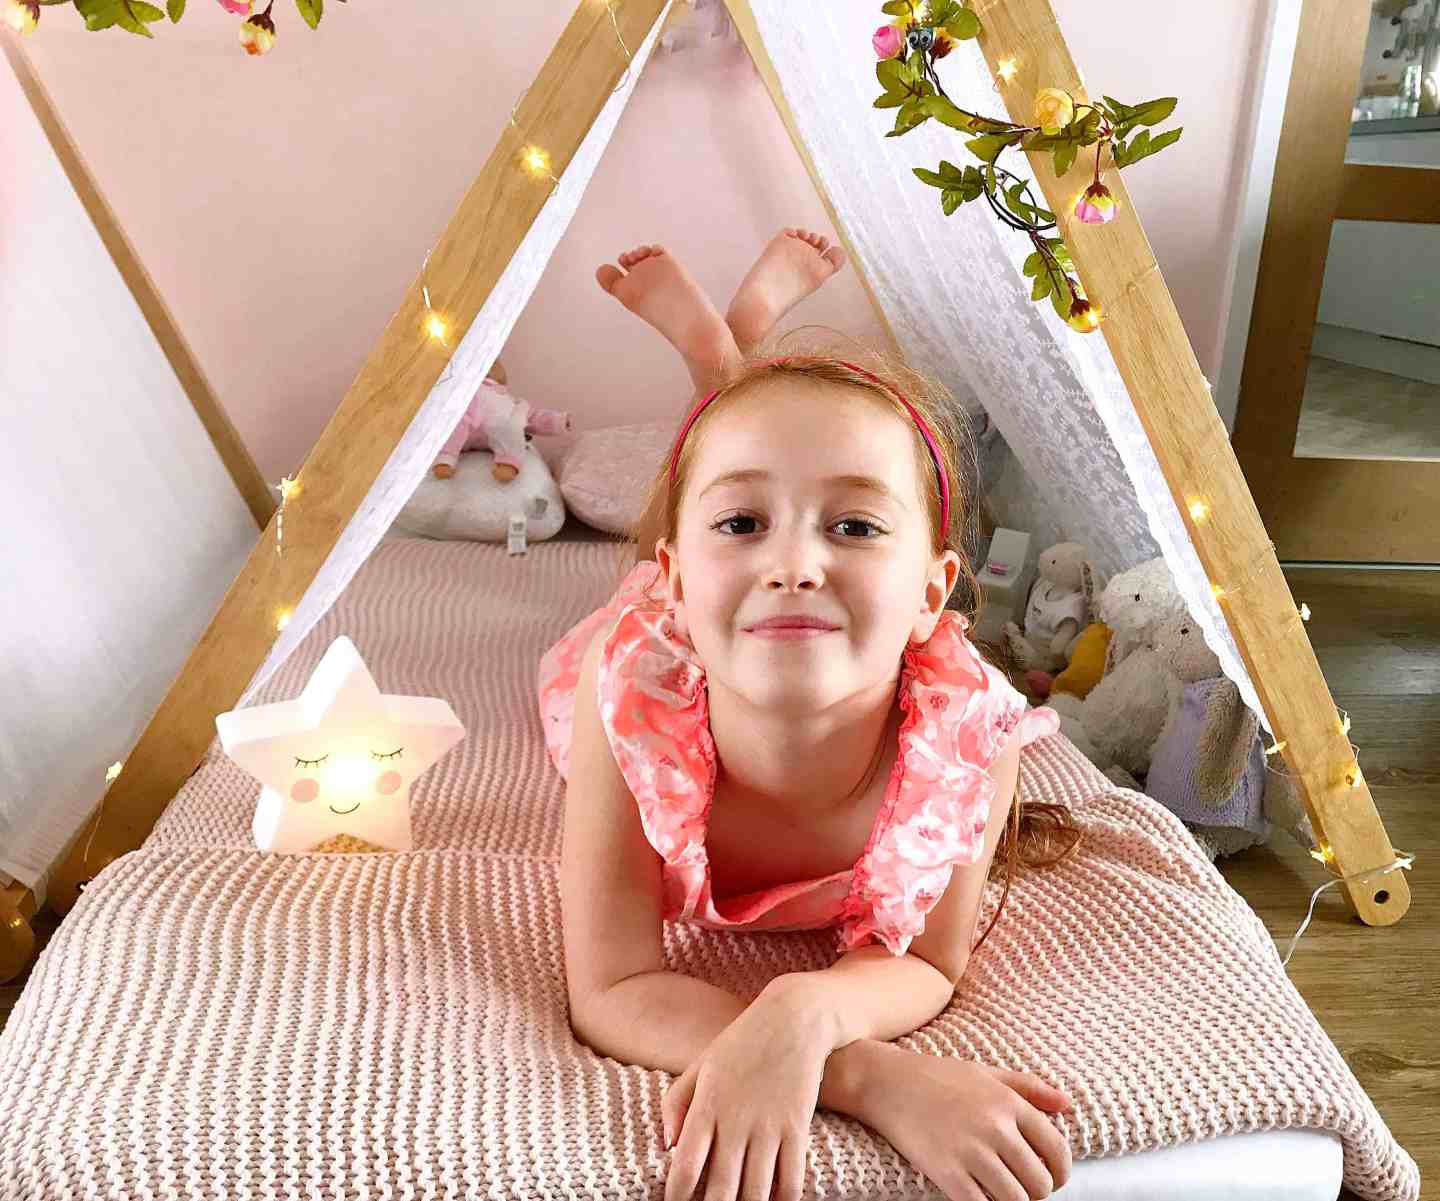 Ava loved her magical sleepover with Teepee Parties